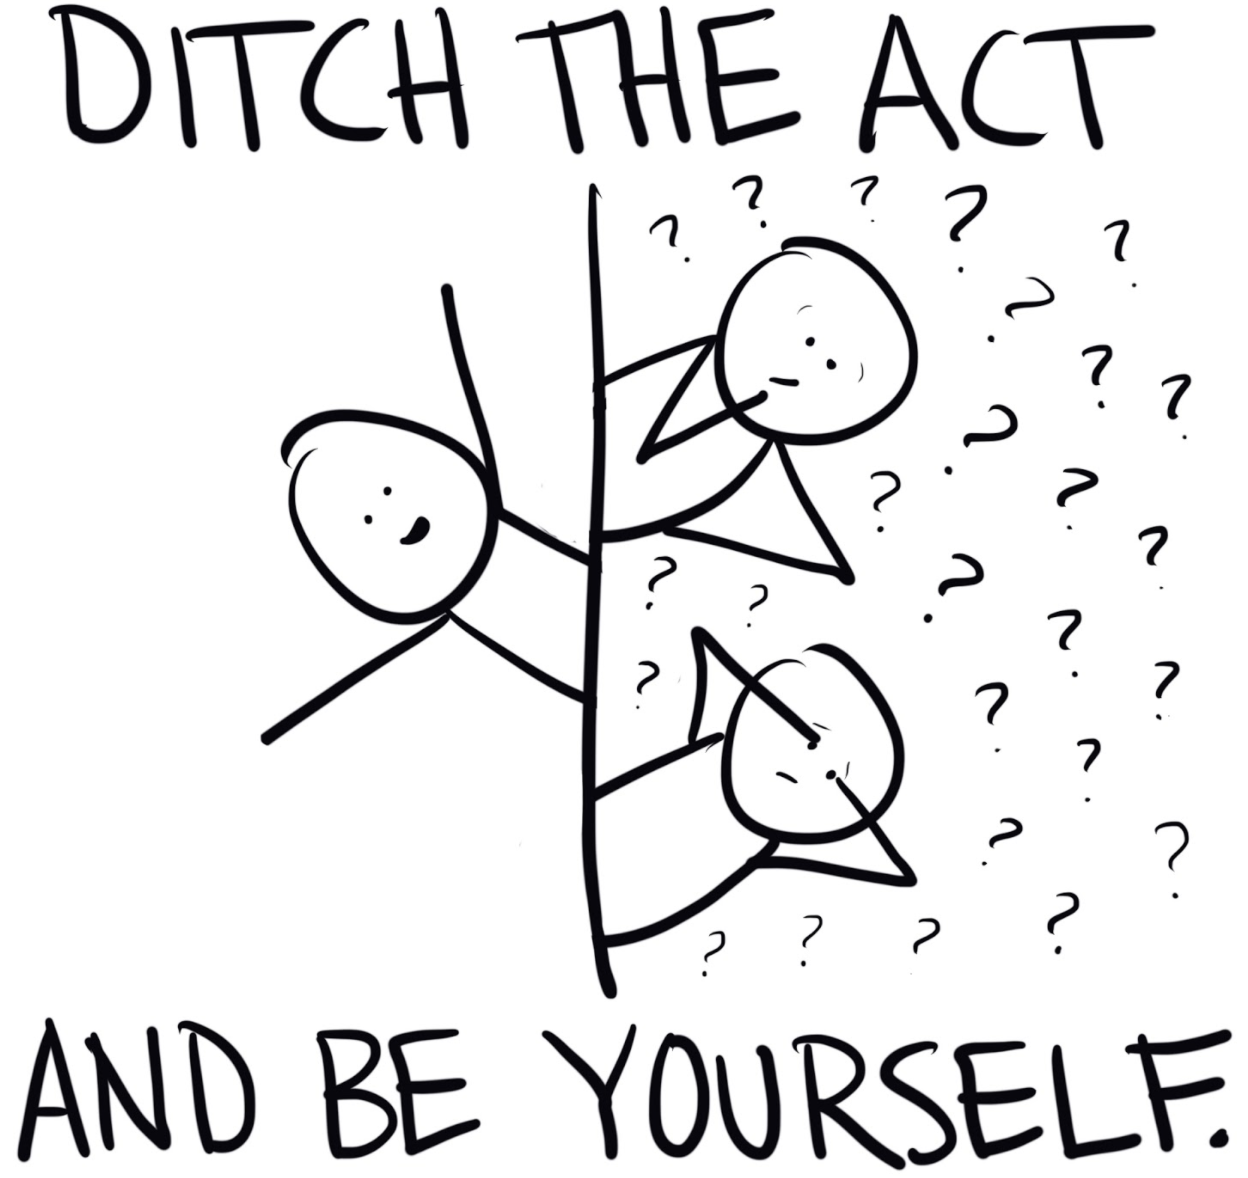 Ditch the act and be yourself - Ryan Foland